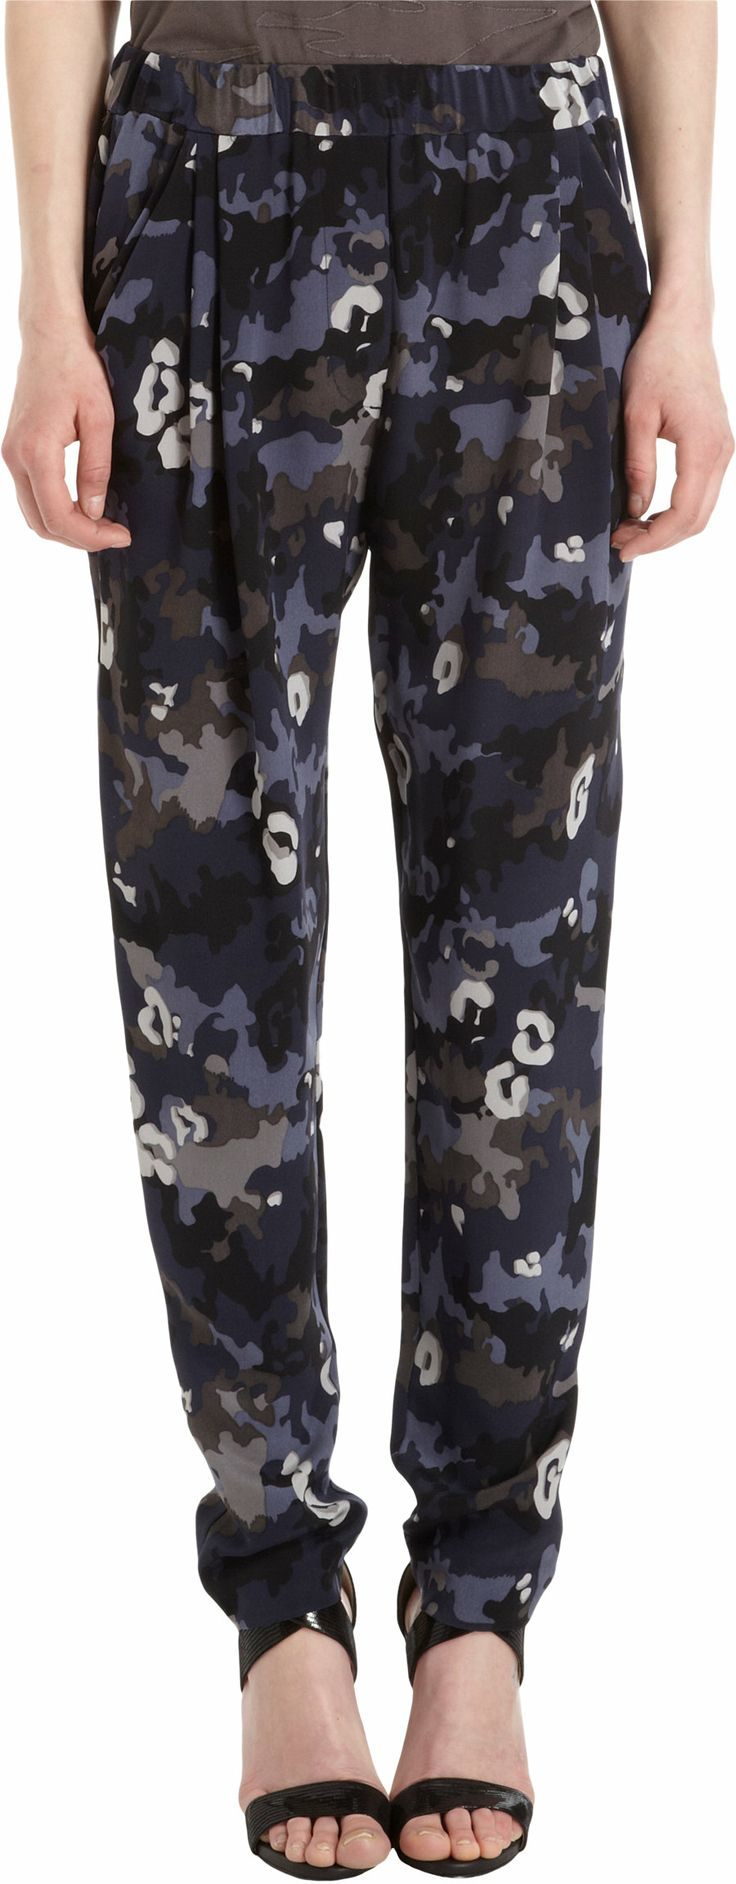 3.1 Phillip Lim Pleated Camo Print Pants at Barneys.com